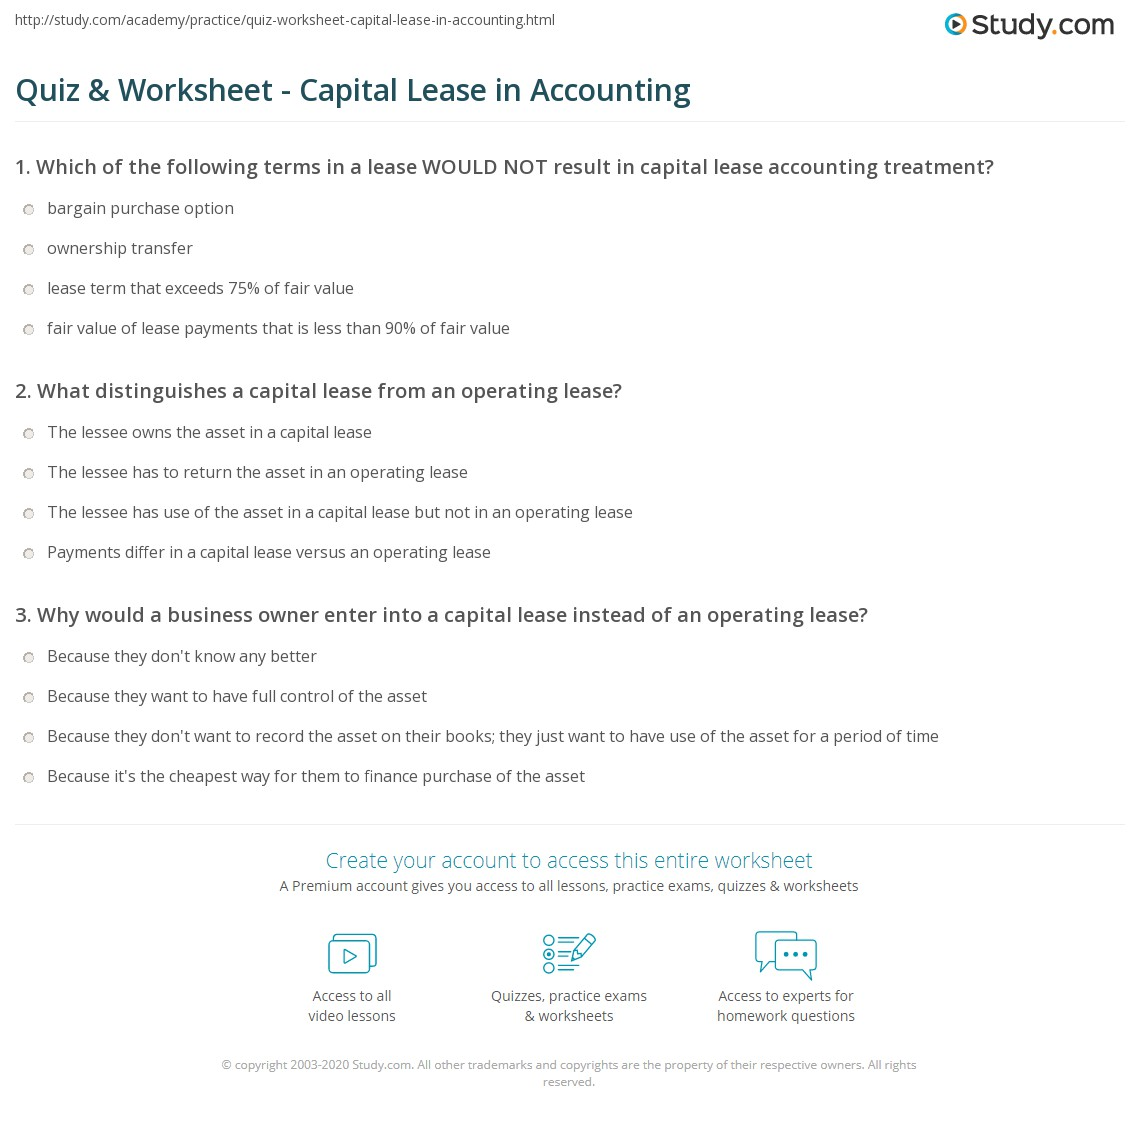 quiz & worksheet - capital lease in accounting | study